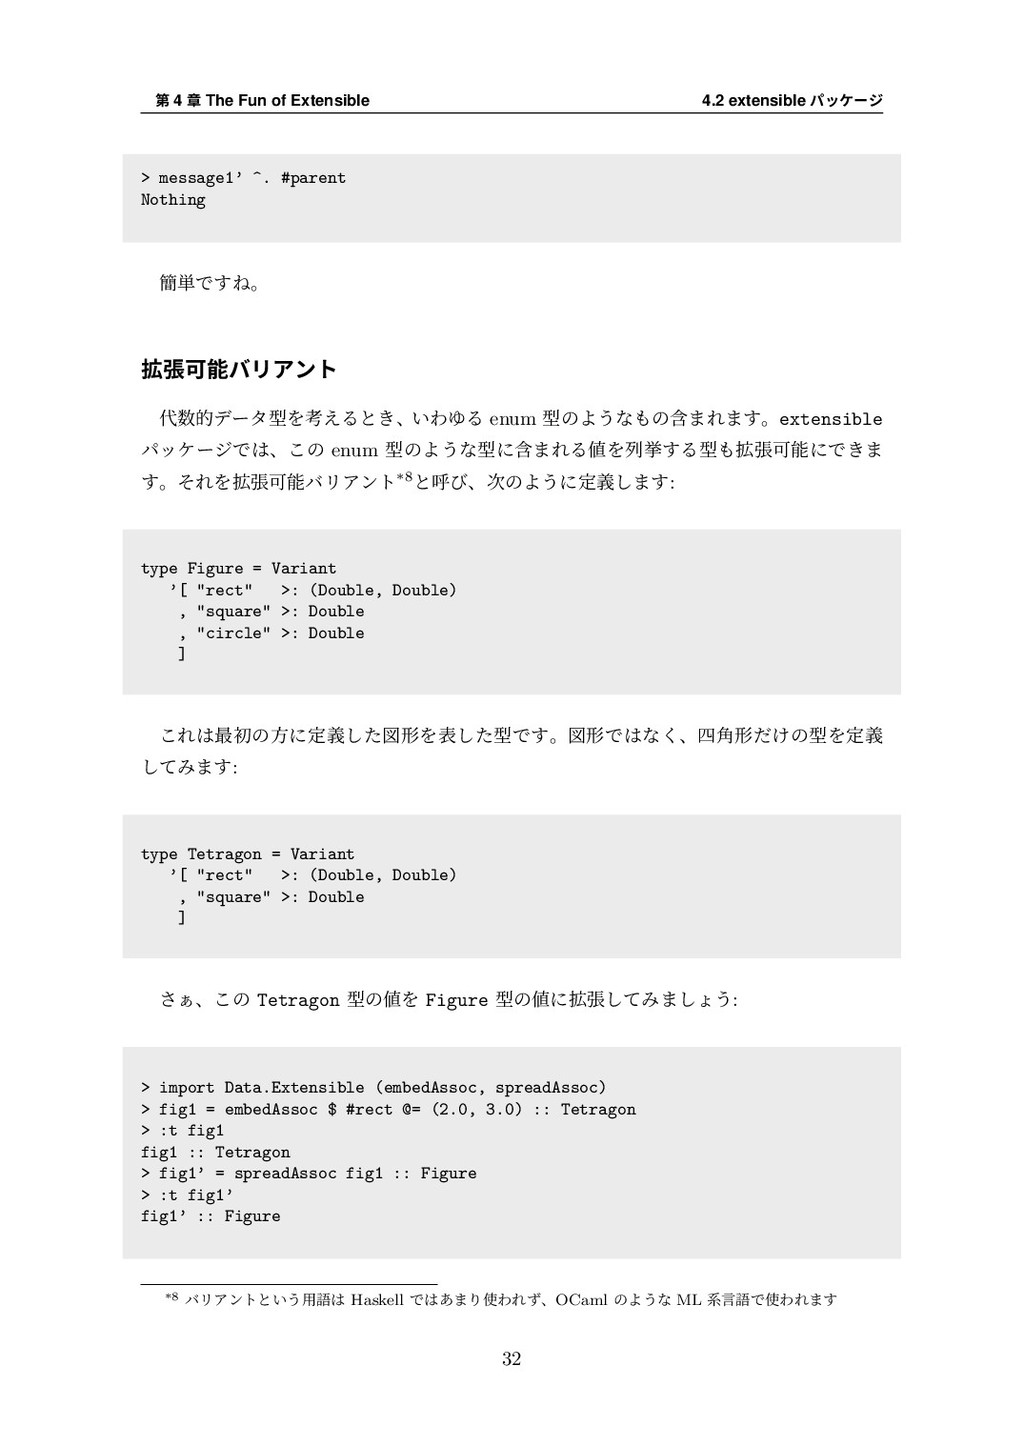 第 4 章 The Fun of Extensible 4.2 extensible パッケー...